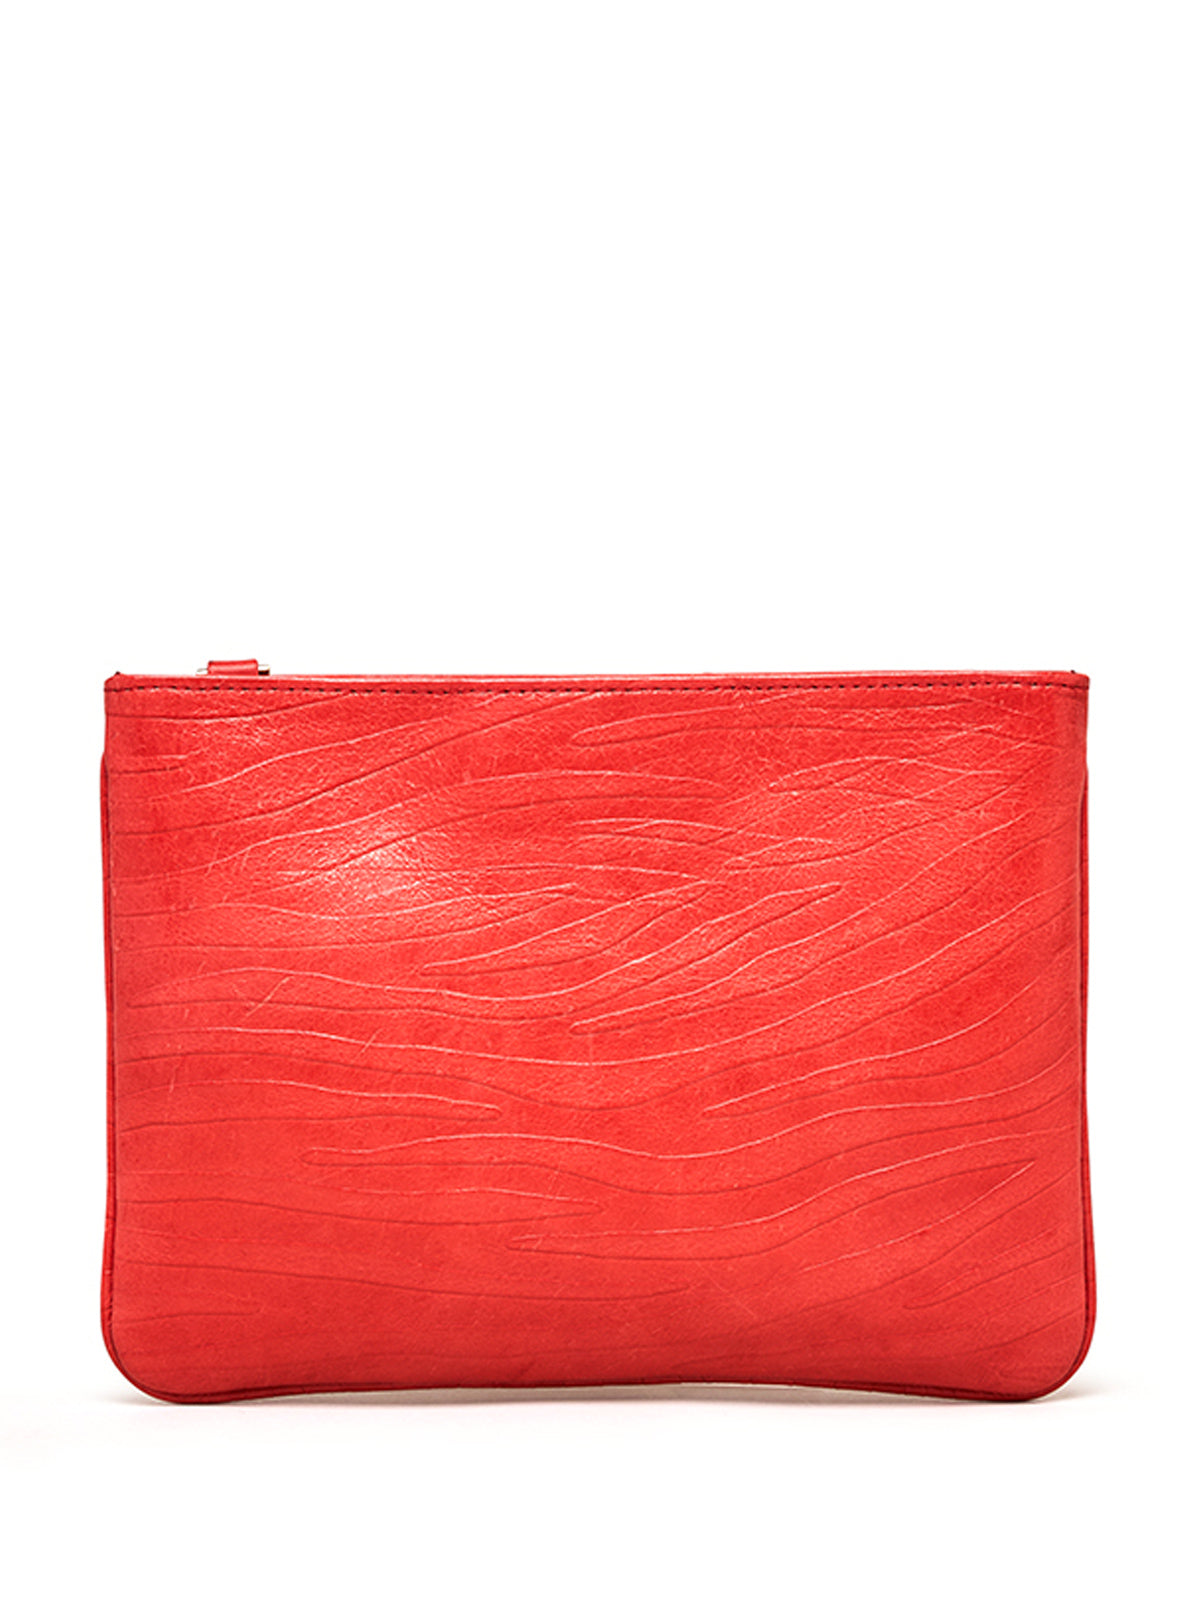 Scarlet Red Aja Clutch with Zen Zulu Horn Charm